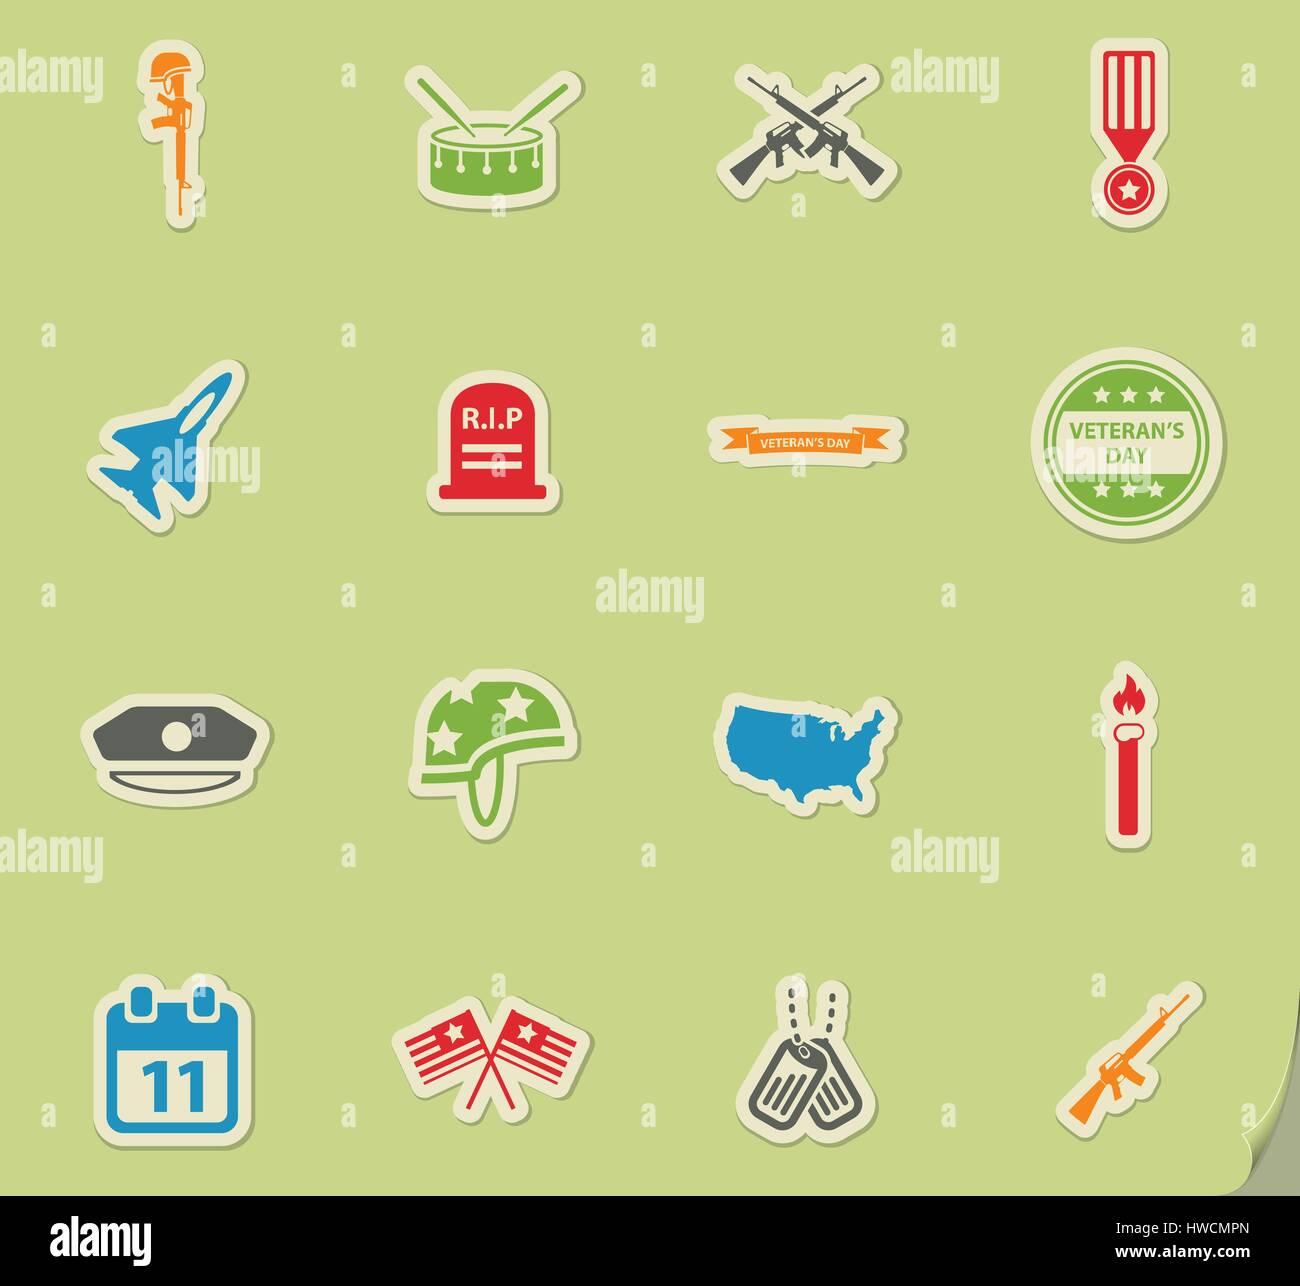 Veterans day simply symbols for web icons stock vector art veterans day simply symbols for web icons biocorpaavc